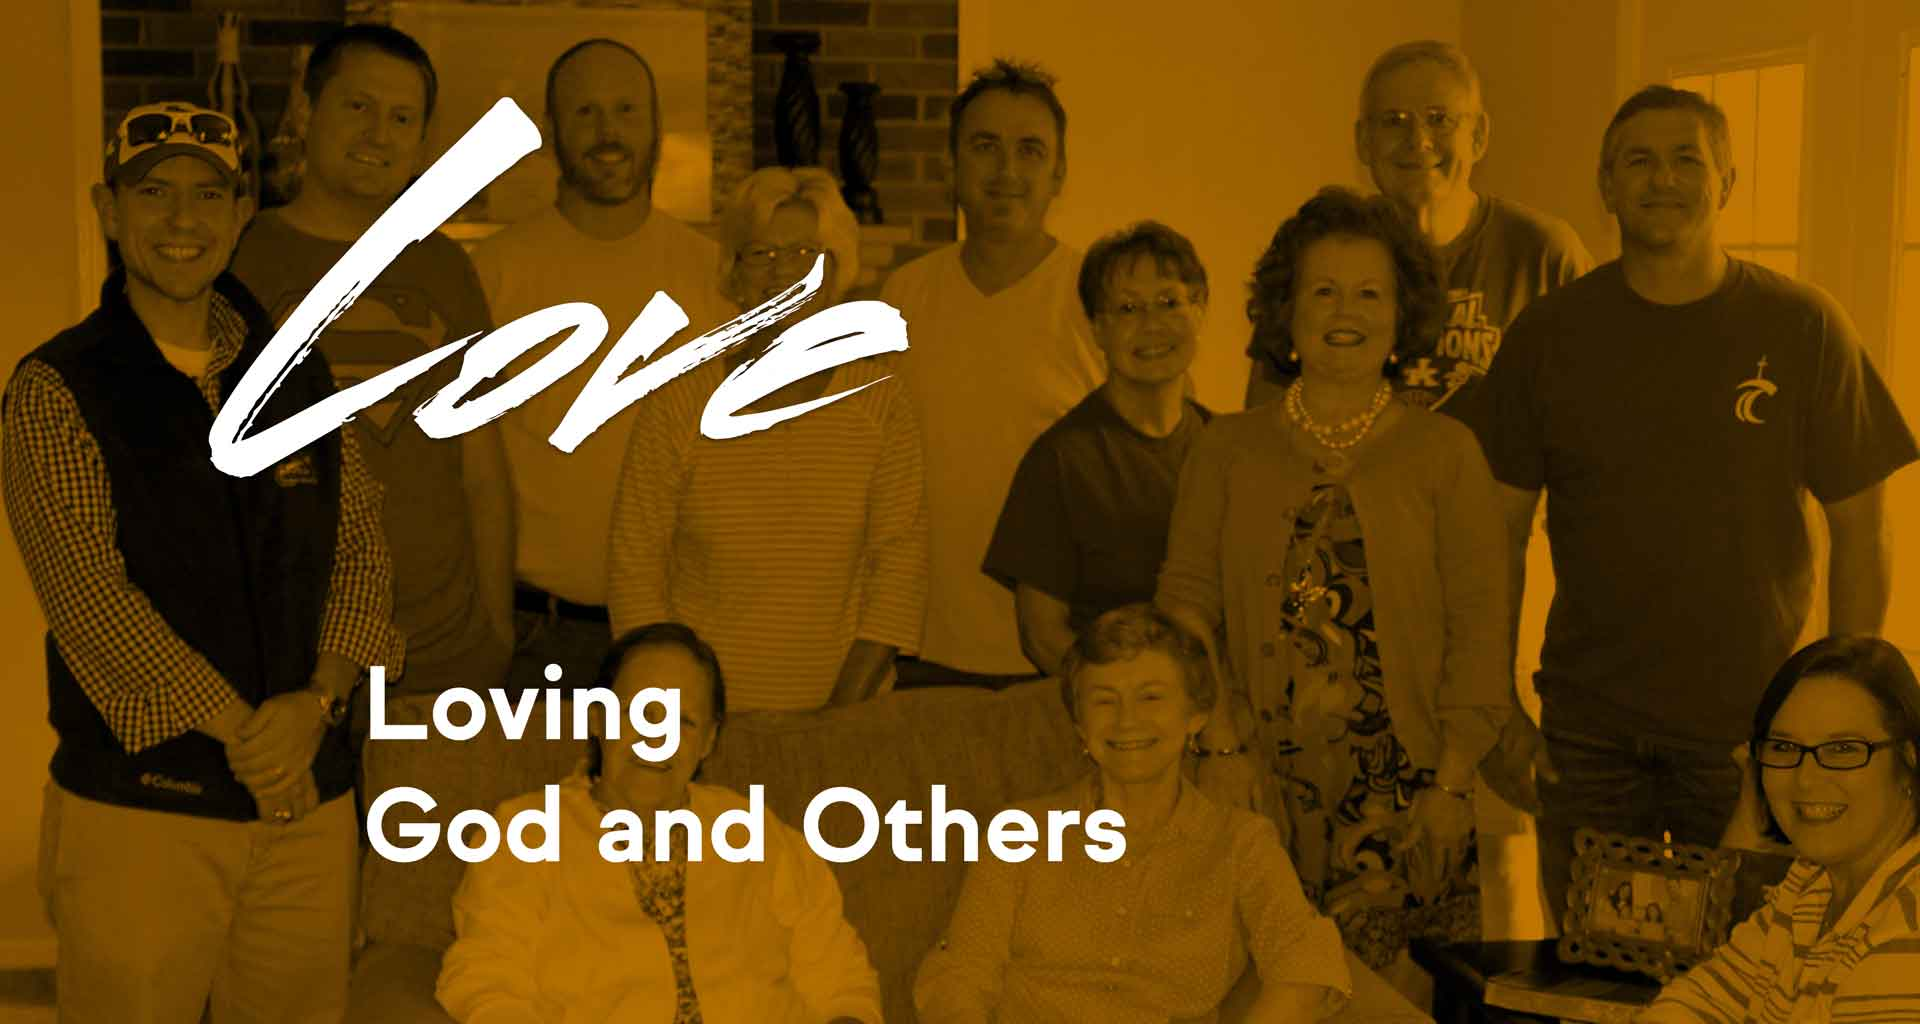 Love: Loving God and Others